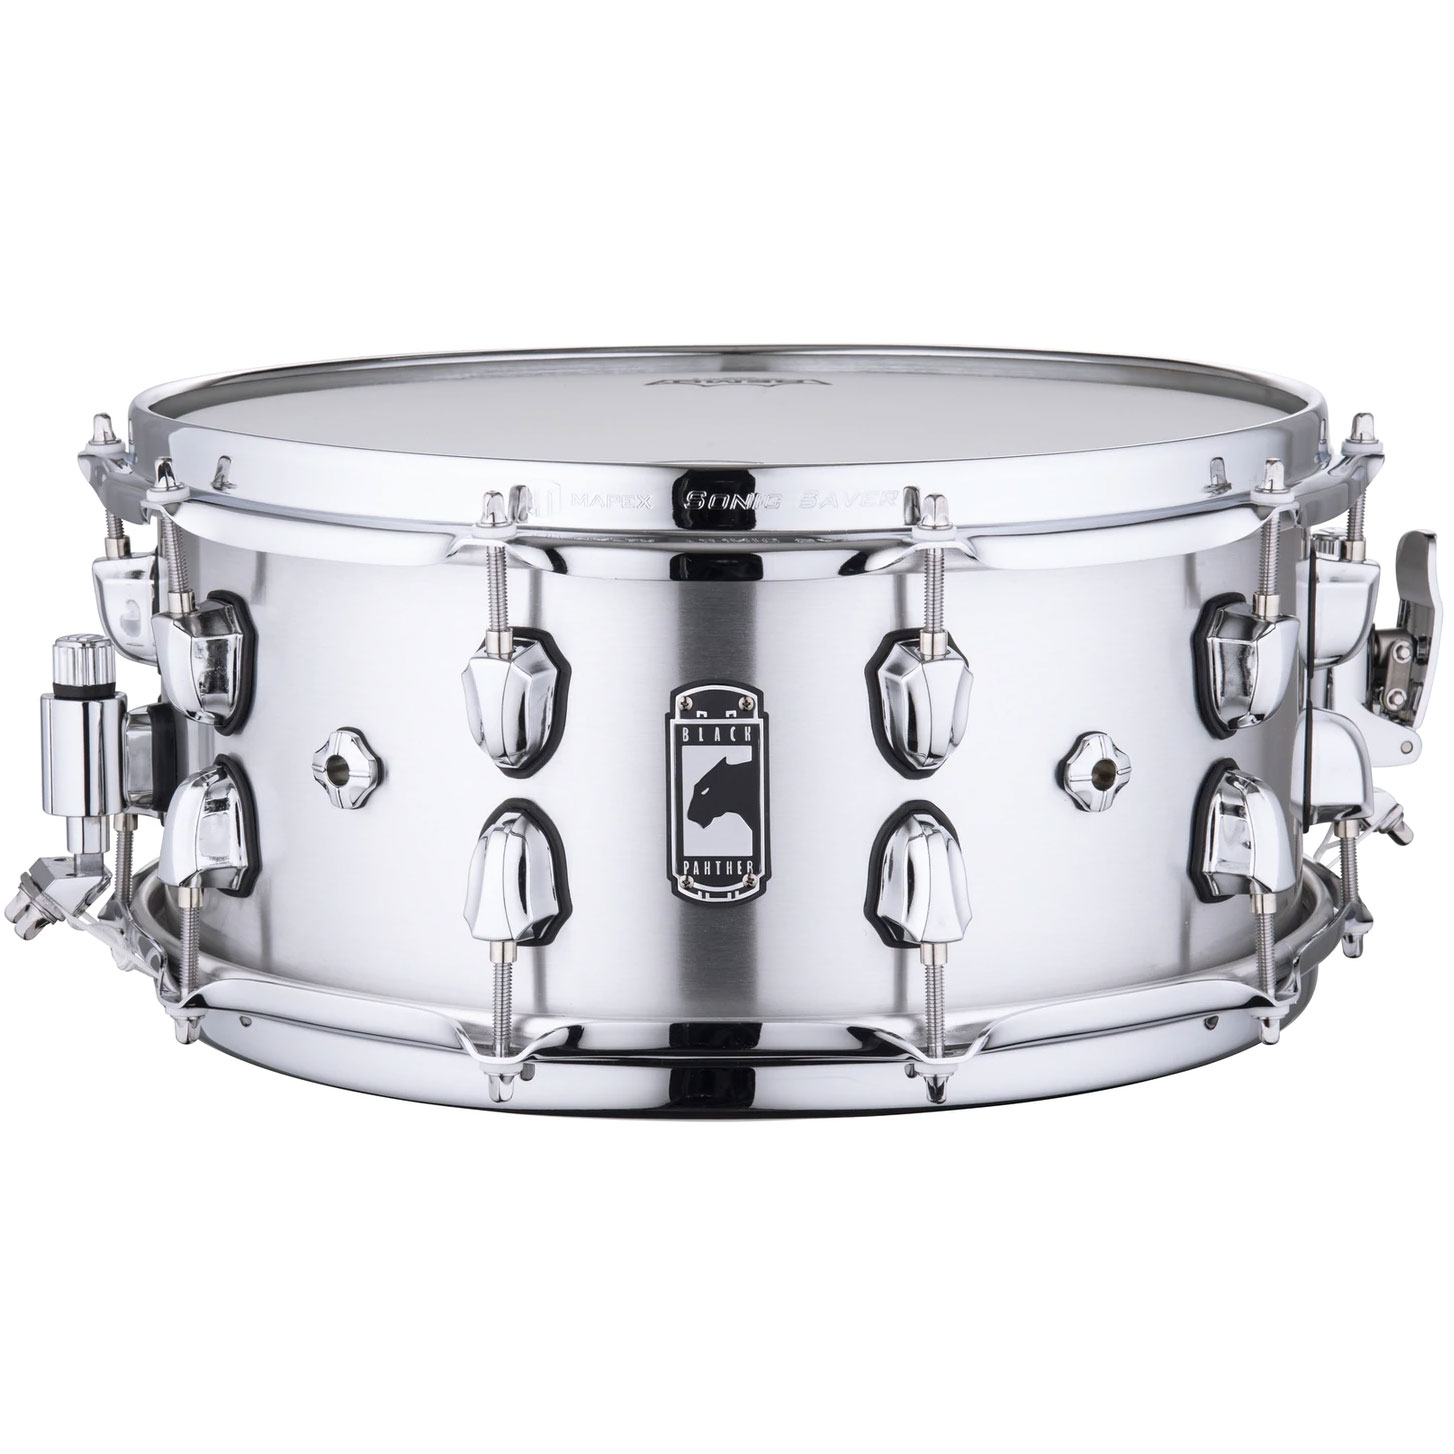 """Mapex 14"""" x 6.5"""" Black Panther """"Atomizer"""" 1.5mm Seamed Aluminum Snare Drum"""